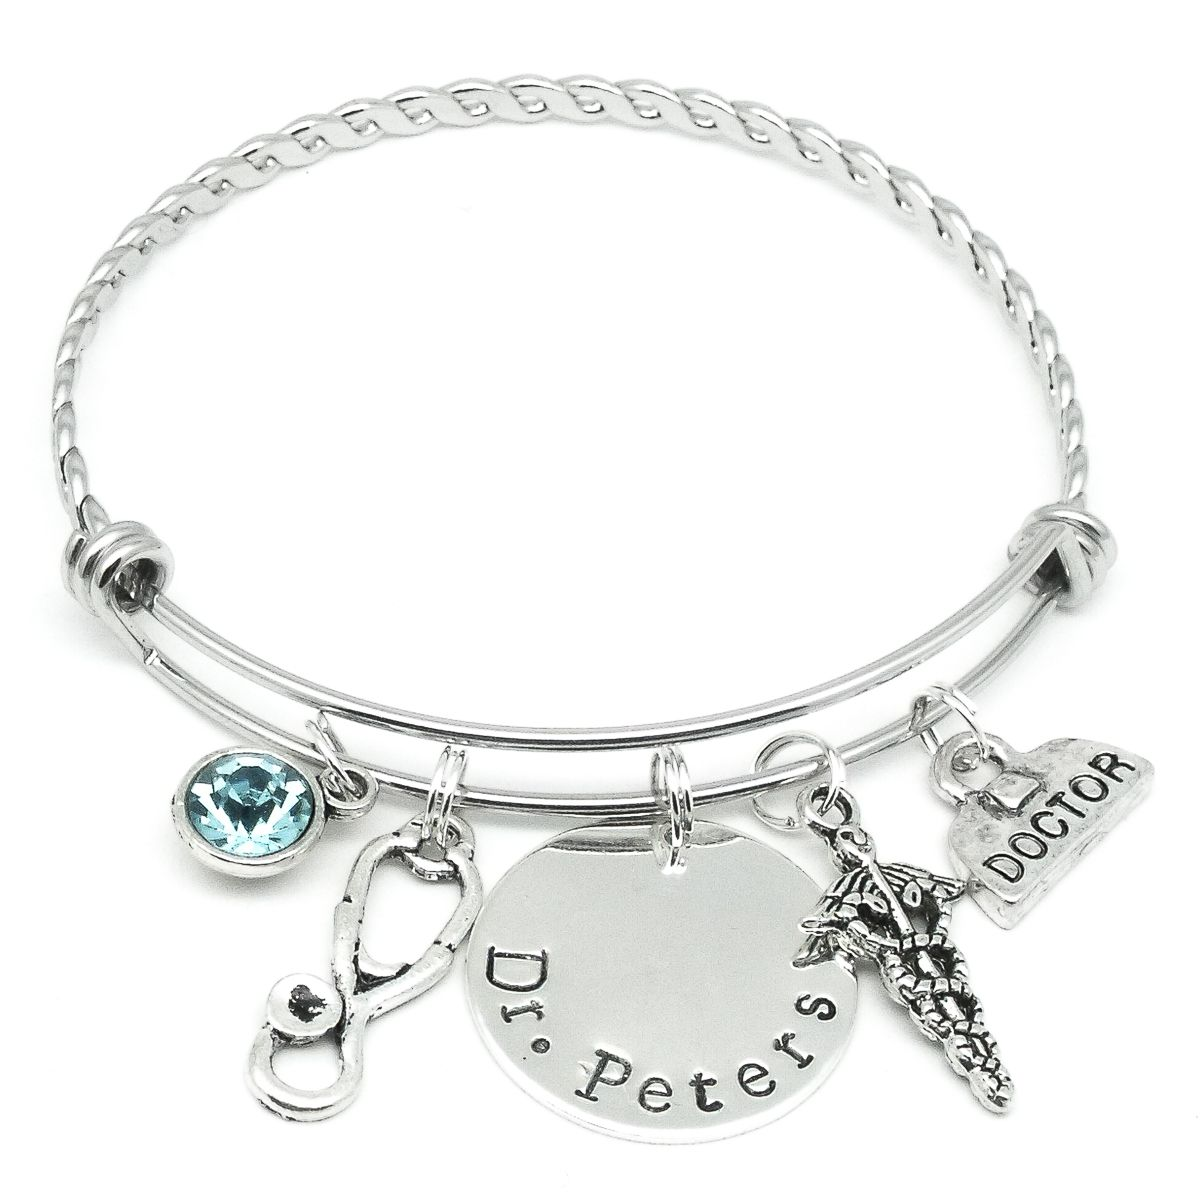 perri personalised bar bracelet